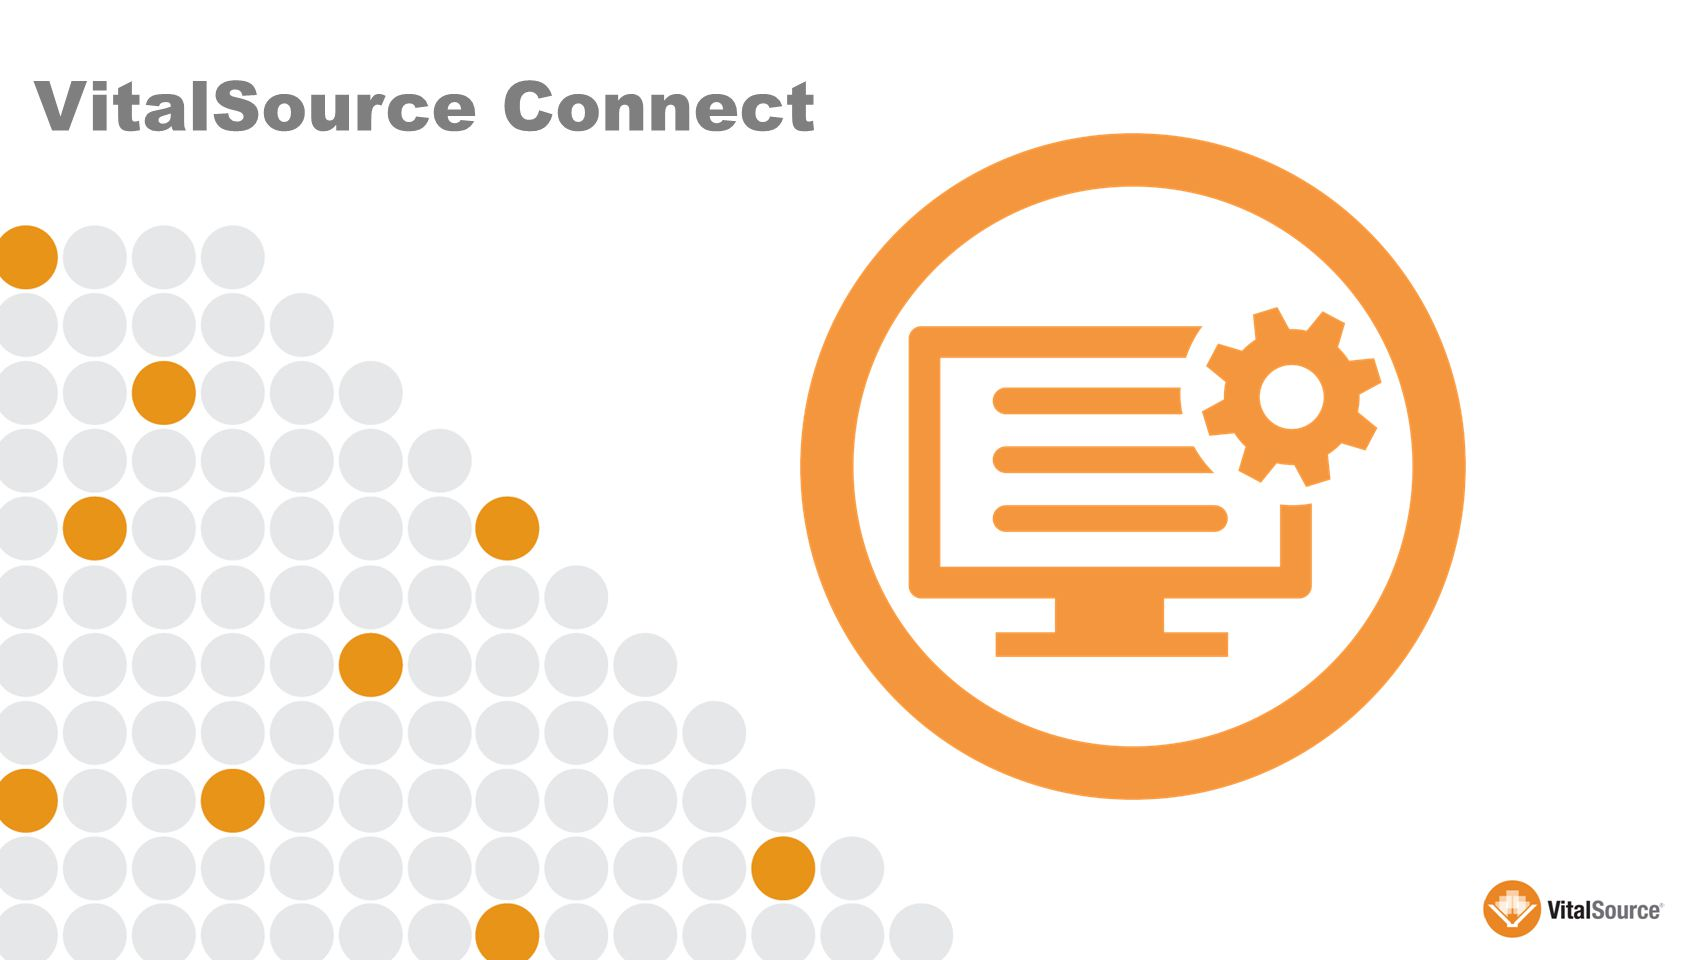 VitalSource Connect